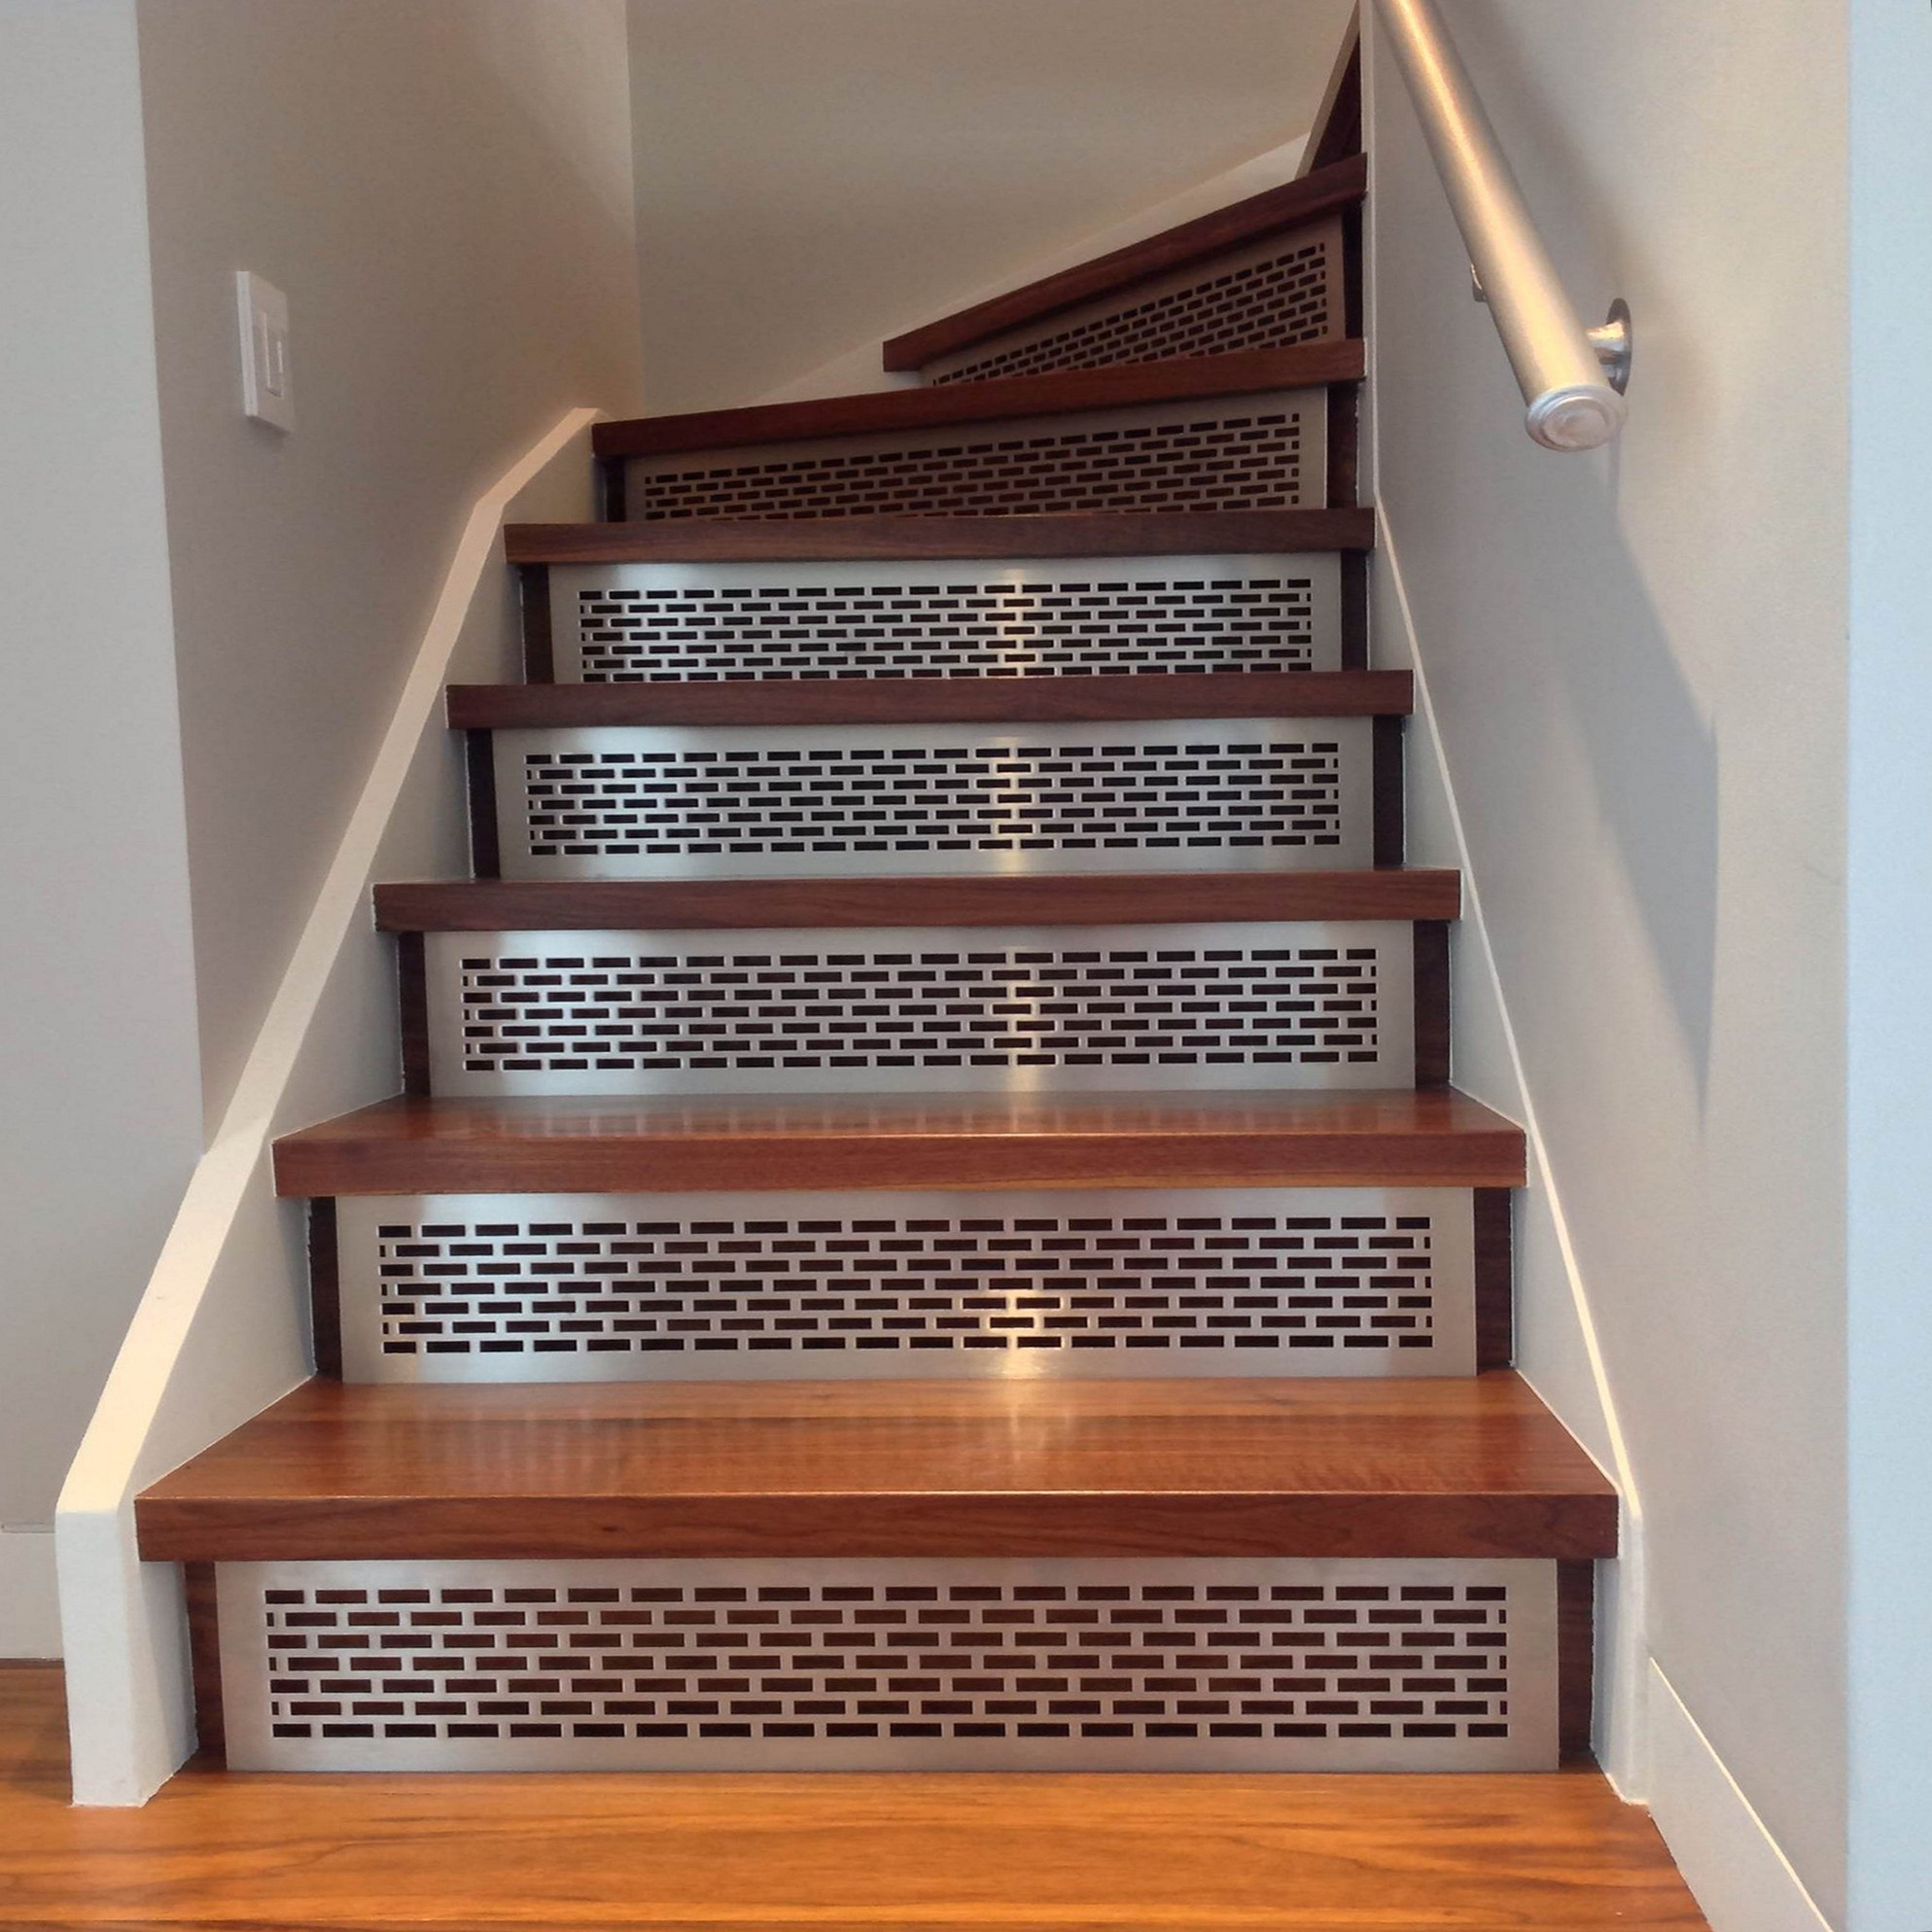 Wood Stair Treads For Stair Protectors Wooden Stairs (Image 15 of 15)